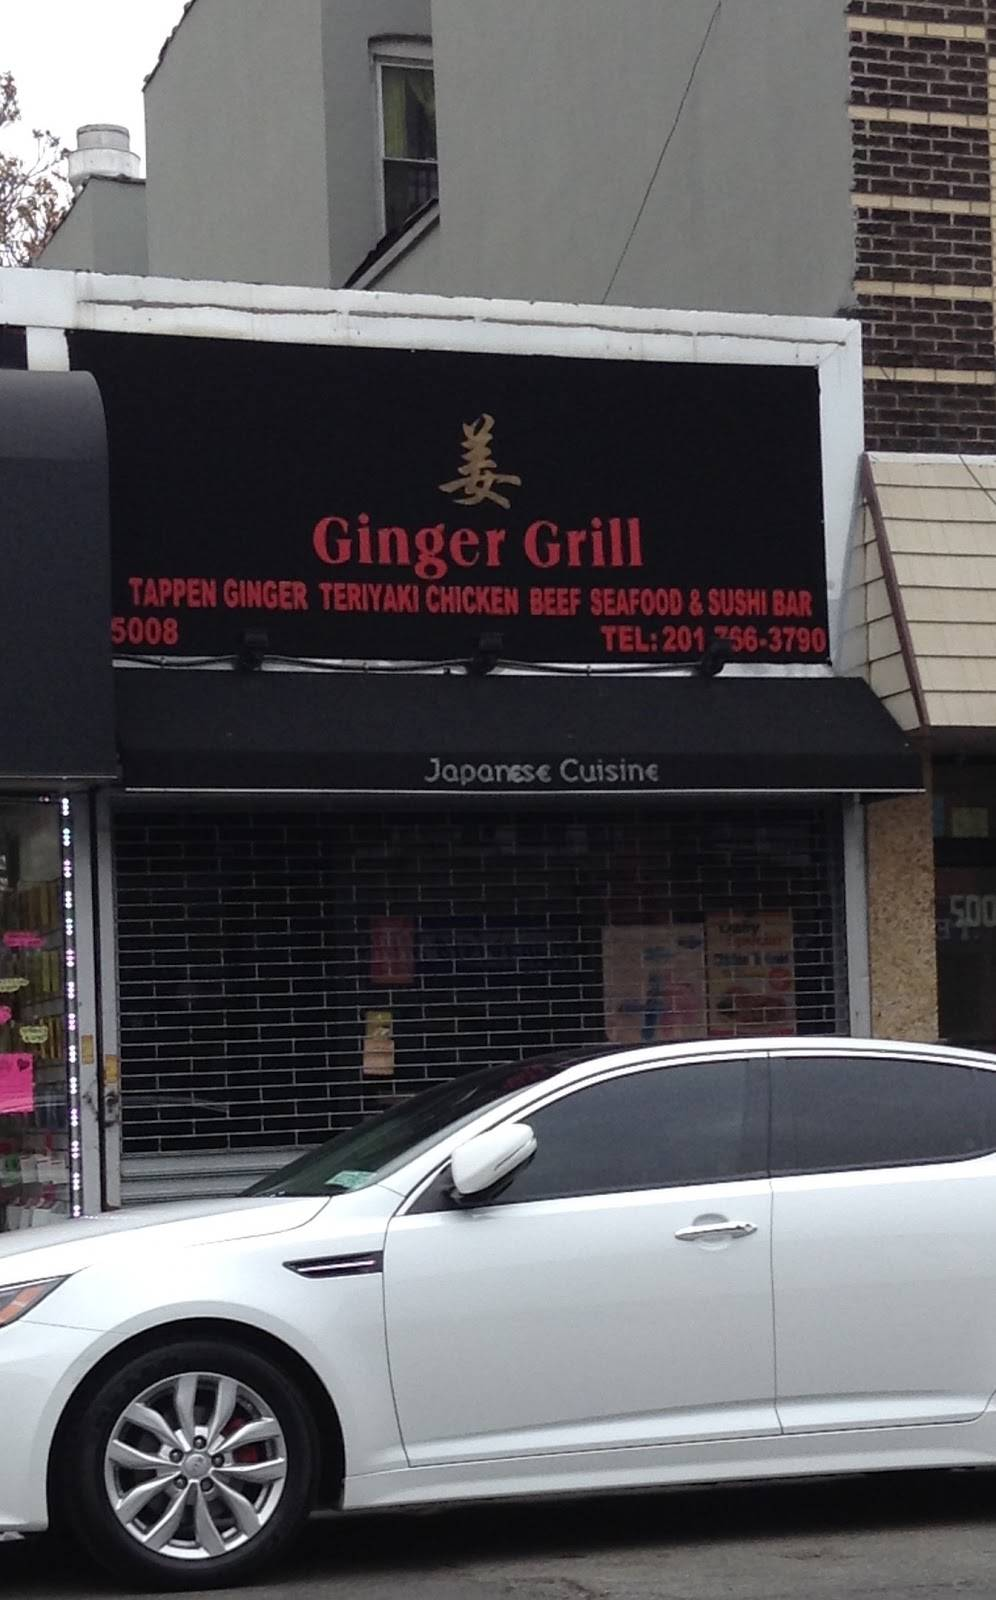 Ginger Grill | restaurant | 5008 Bergenline Ave, West New York, NJ 07093, USA | 2017663790 OR +1 201-766-3790